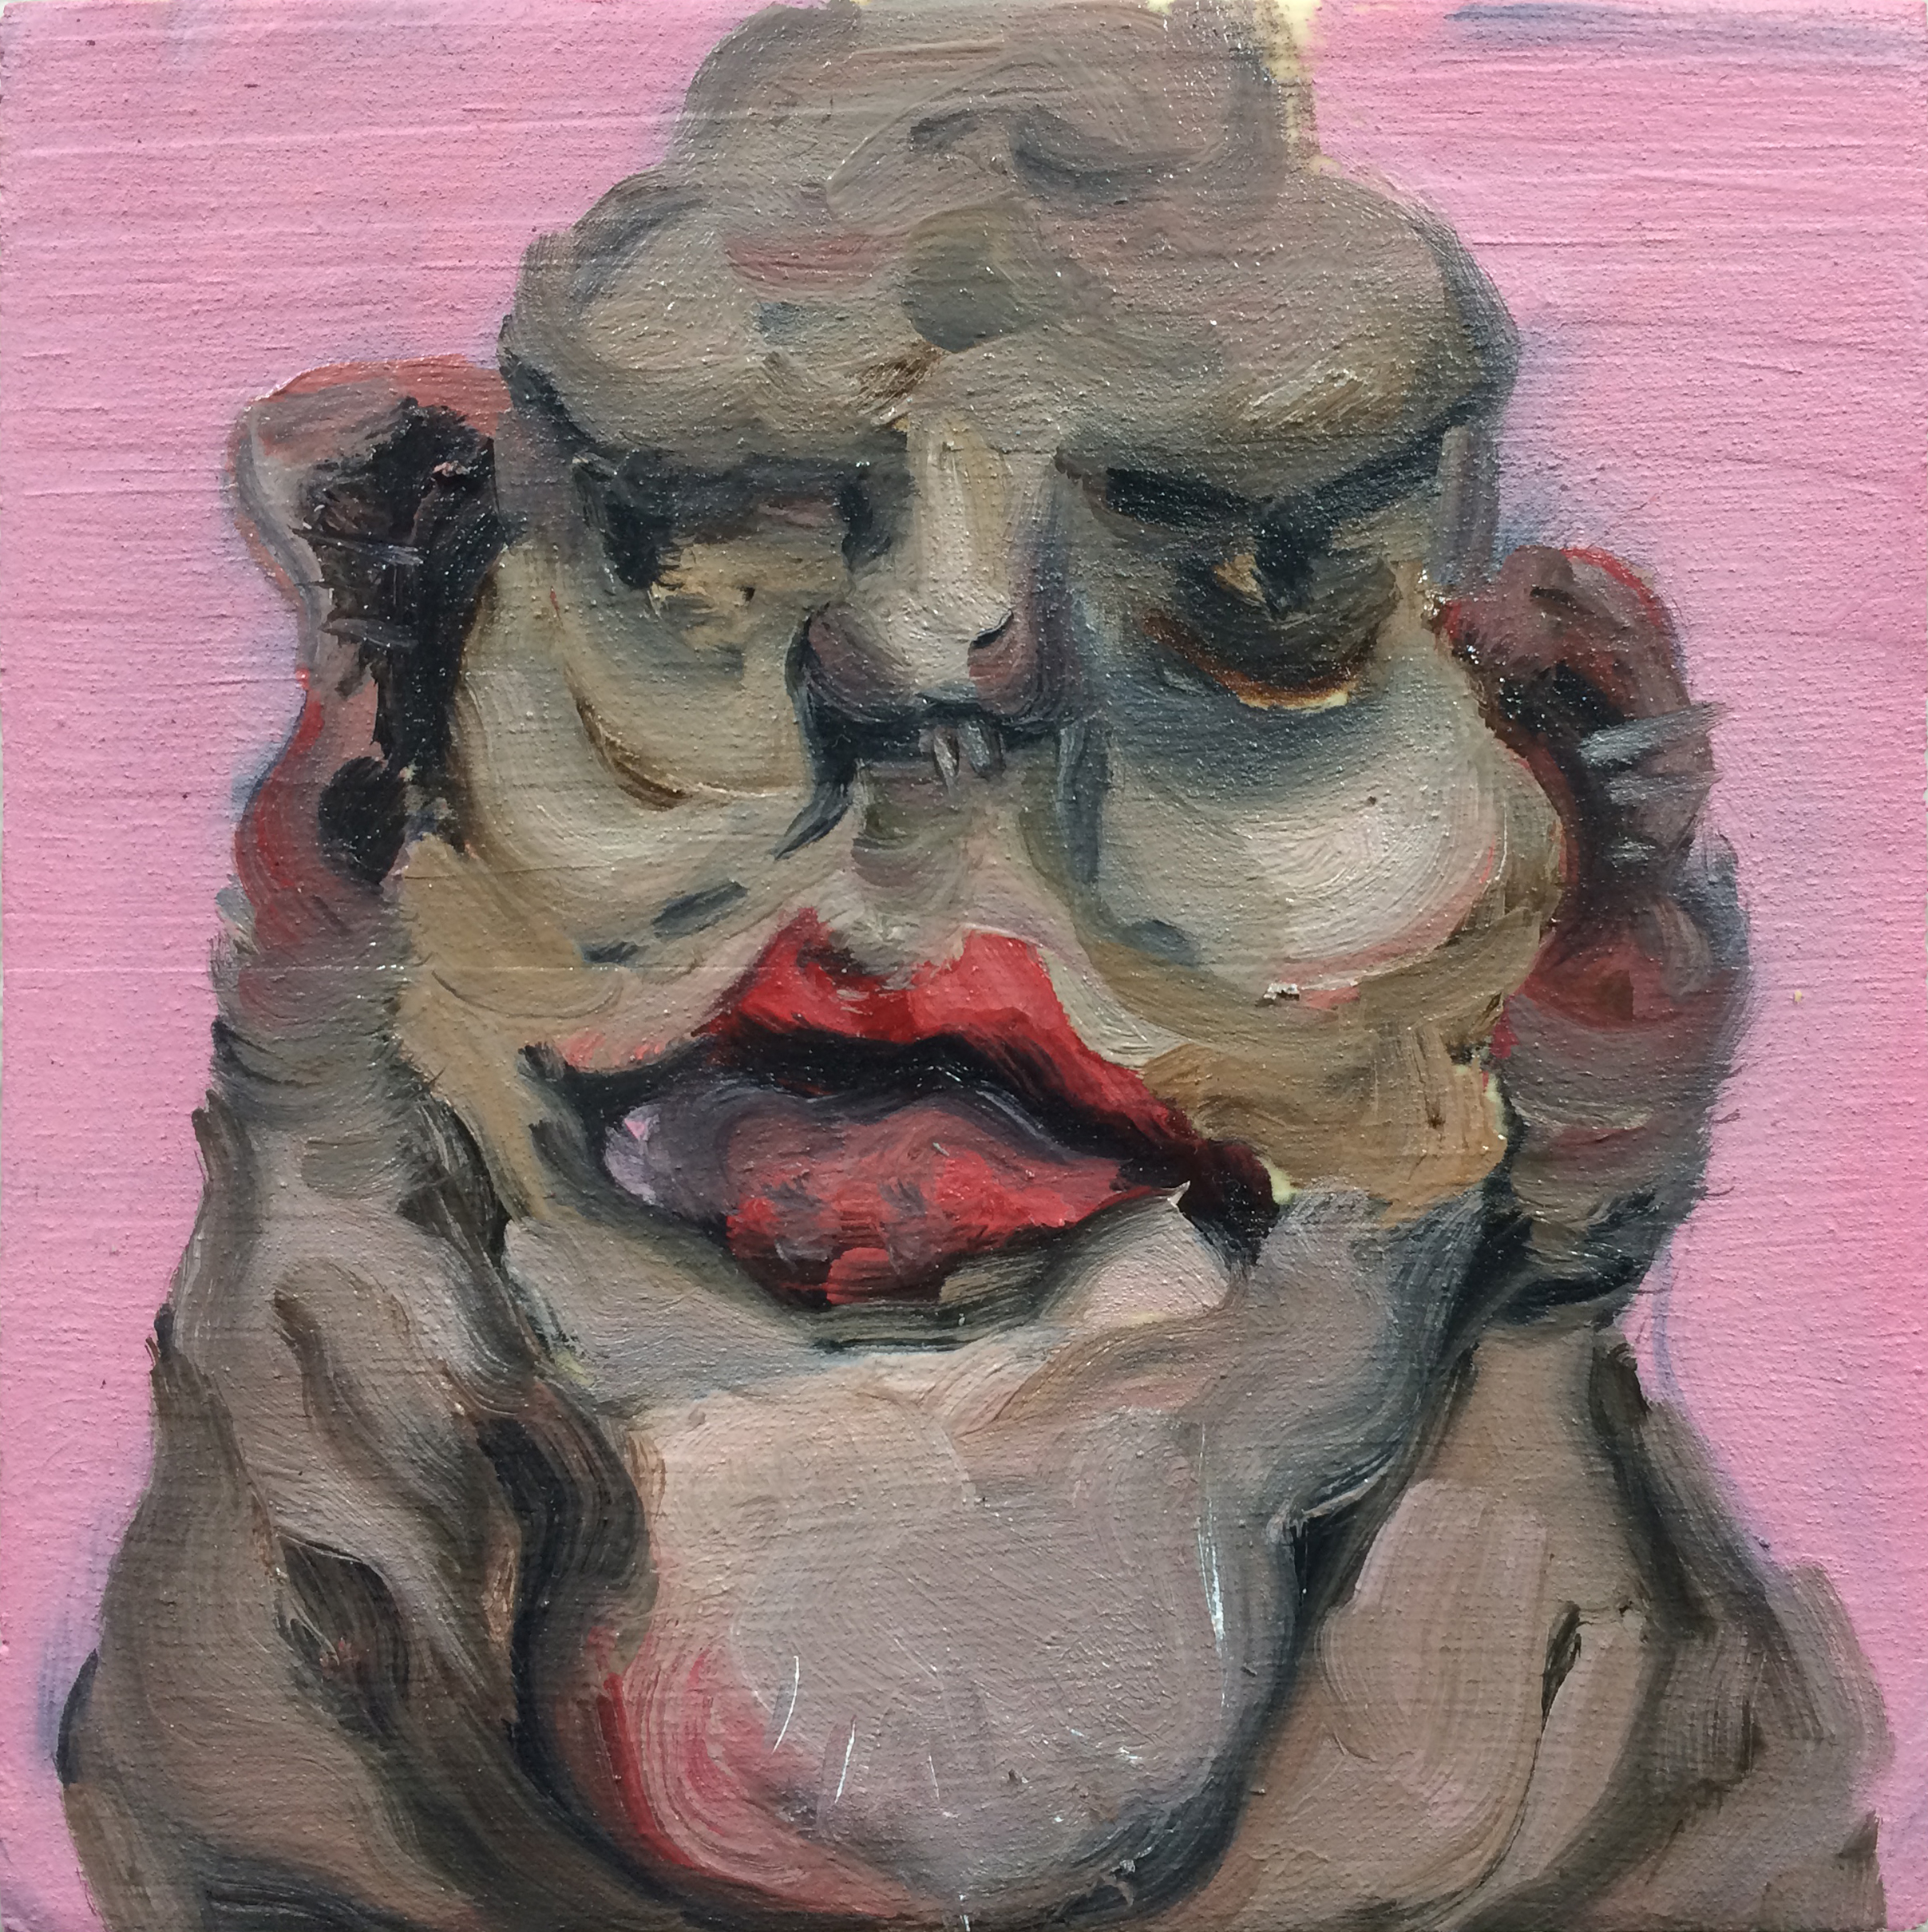 An oil painting of a portrait of a closeup grotesque head with a brown complexion & red lips on a bubblegum-pink background.